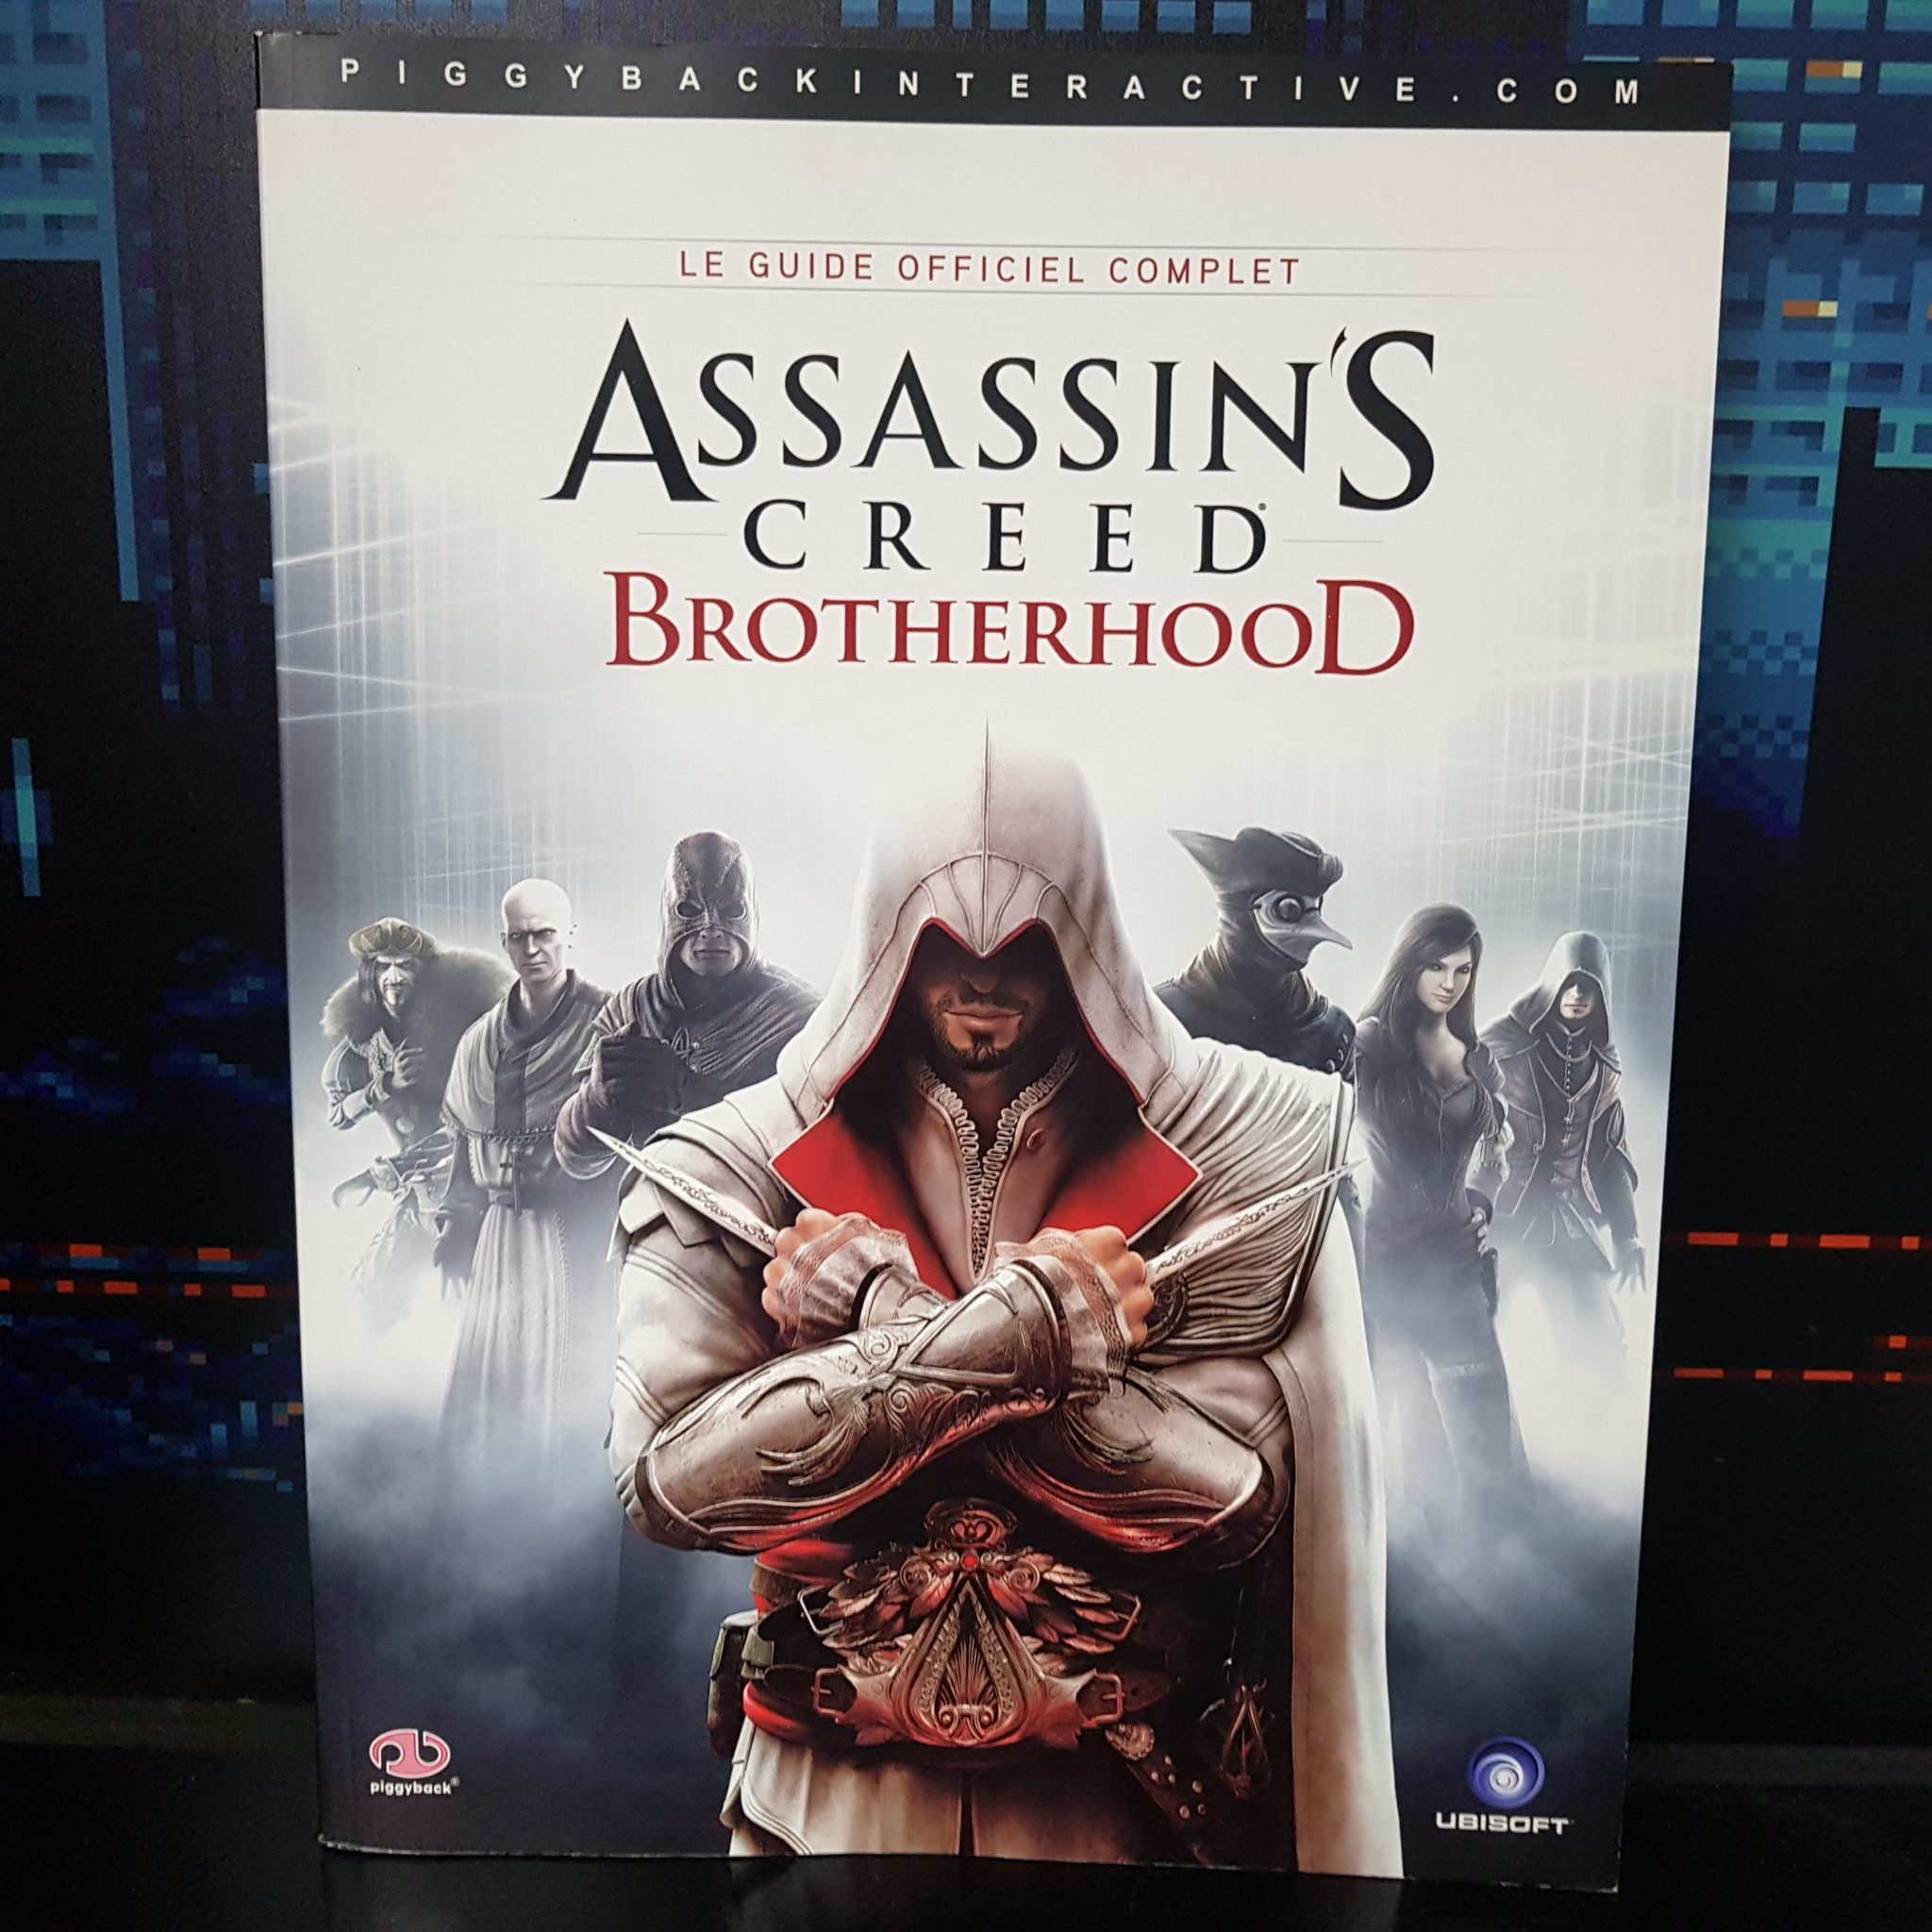 Assassins creed brotherhood investment guide small investment stock broker